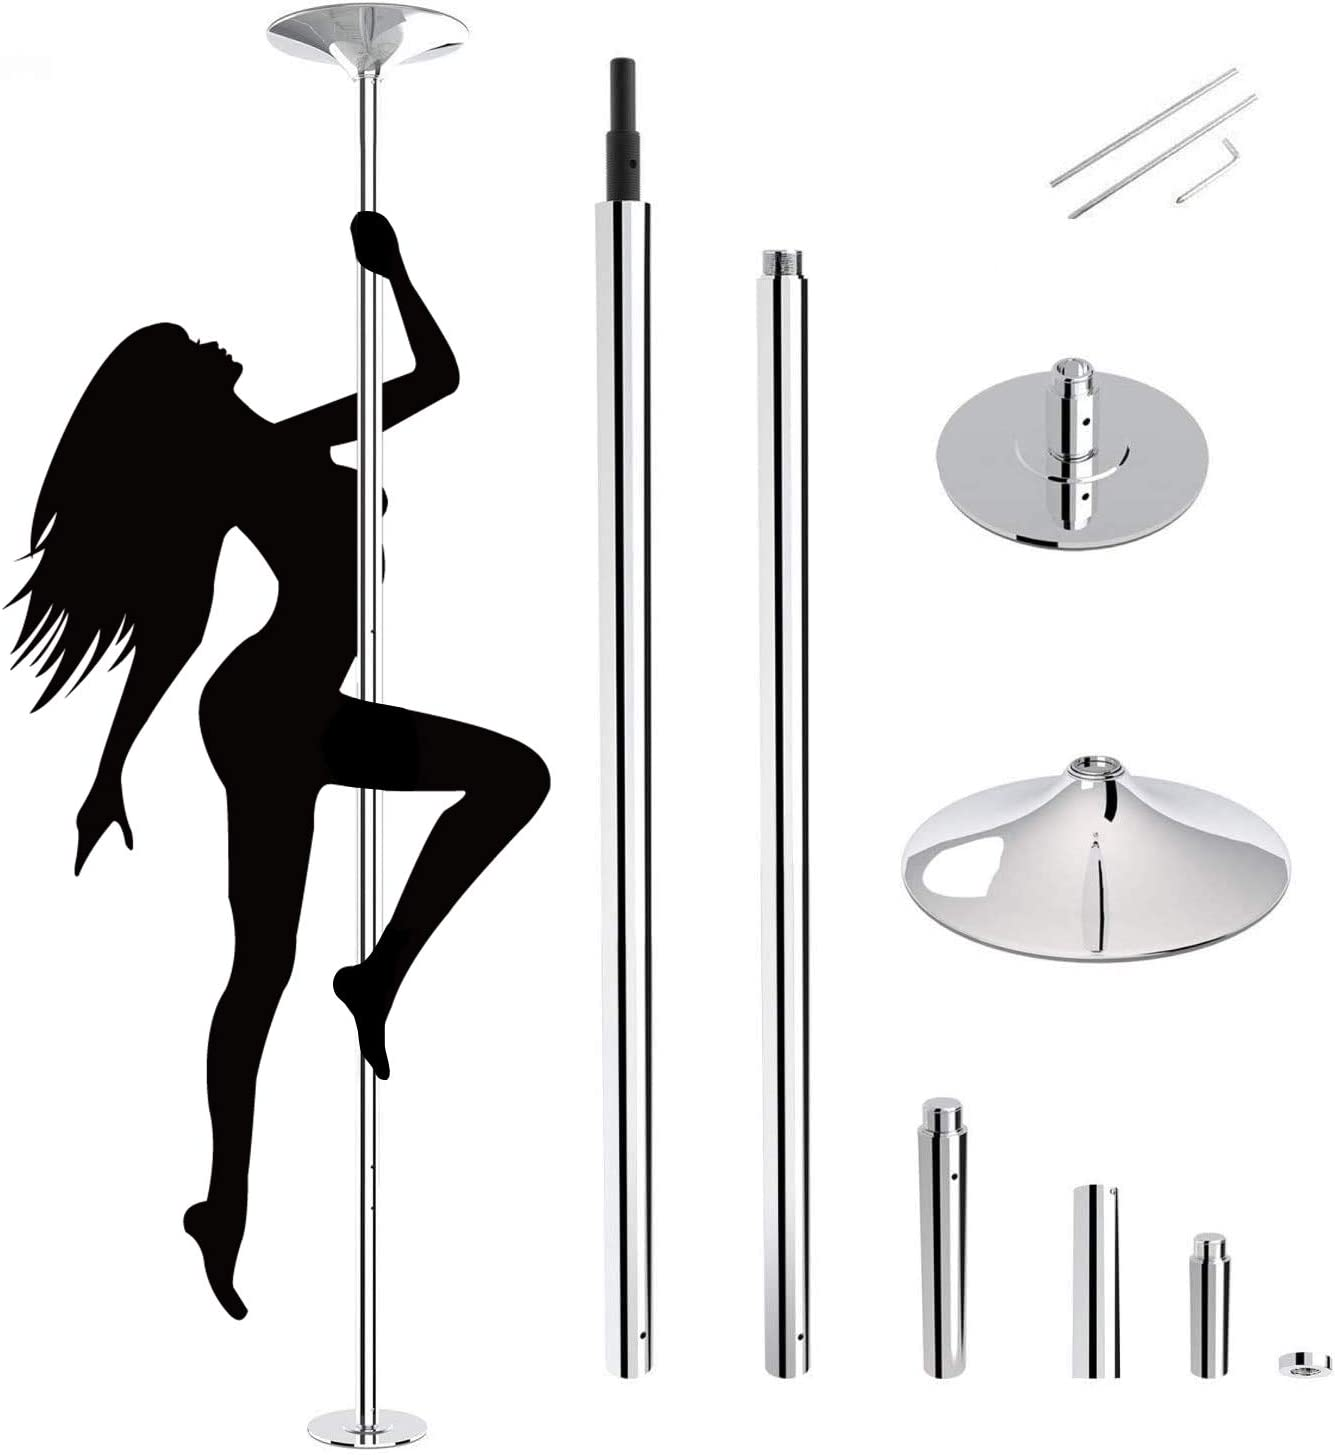 Oul Professional Stripper Pole Spinning Static Dancing Pole Portable Removable 45mm Dance Pole Kit for Exercise Club Party Pub Home Fitness (Silver)